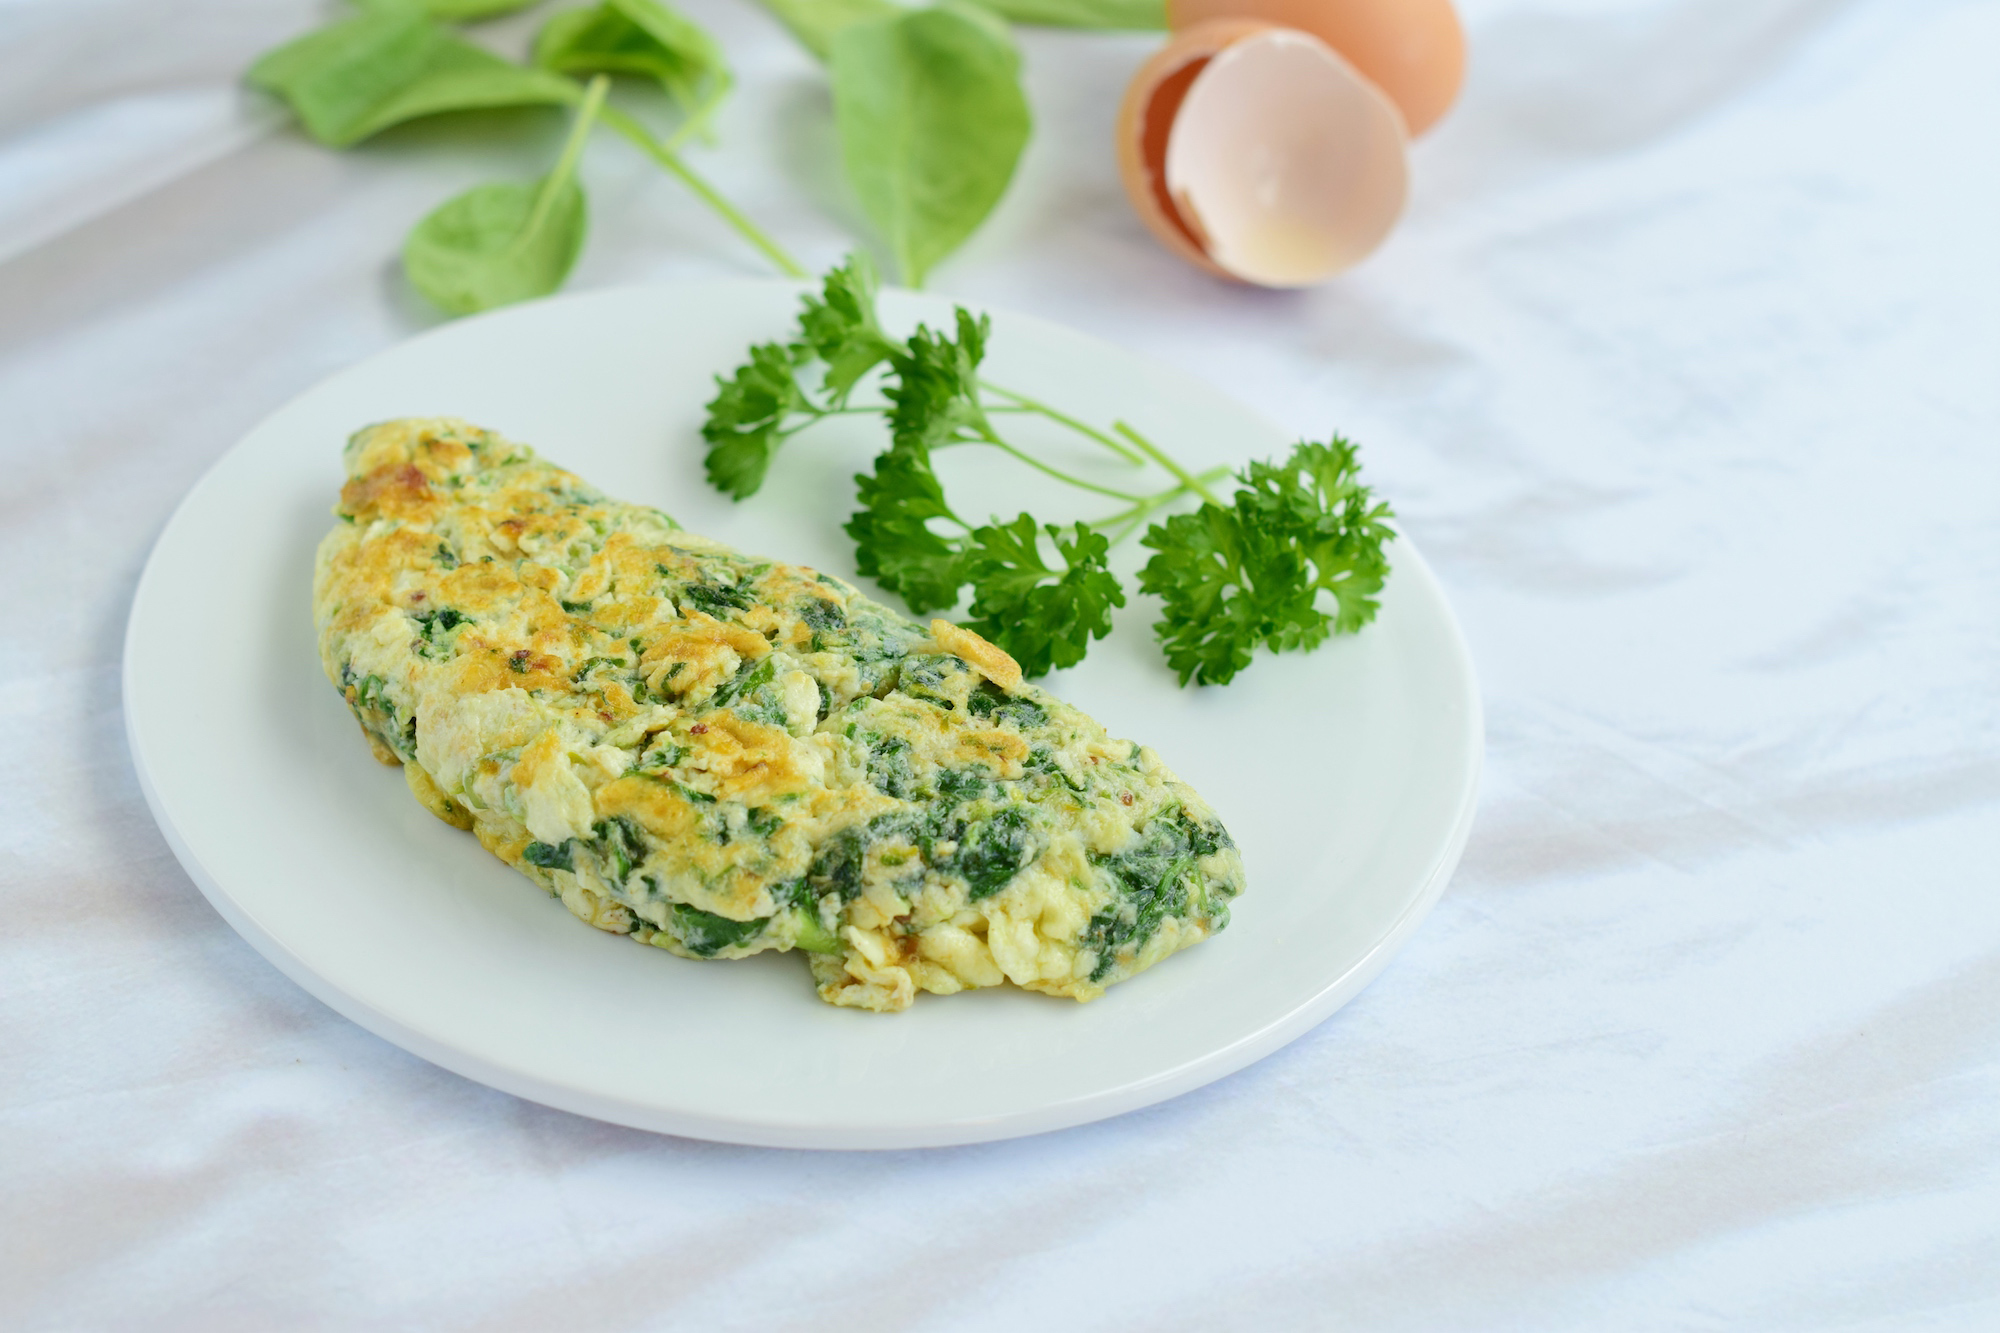 Egg-white-spinach-alfalfa-sprout-omelette